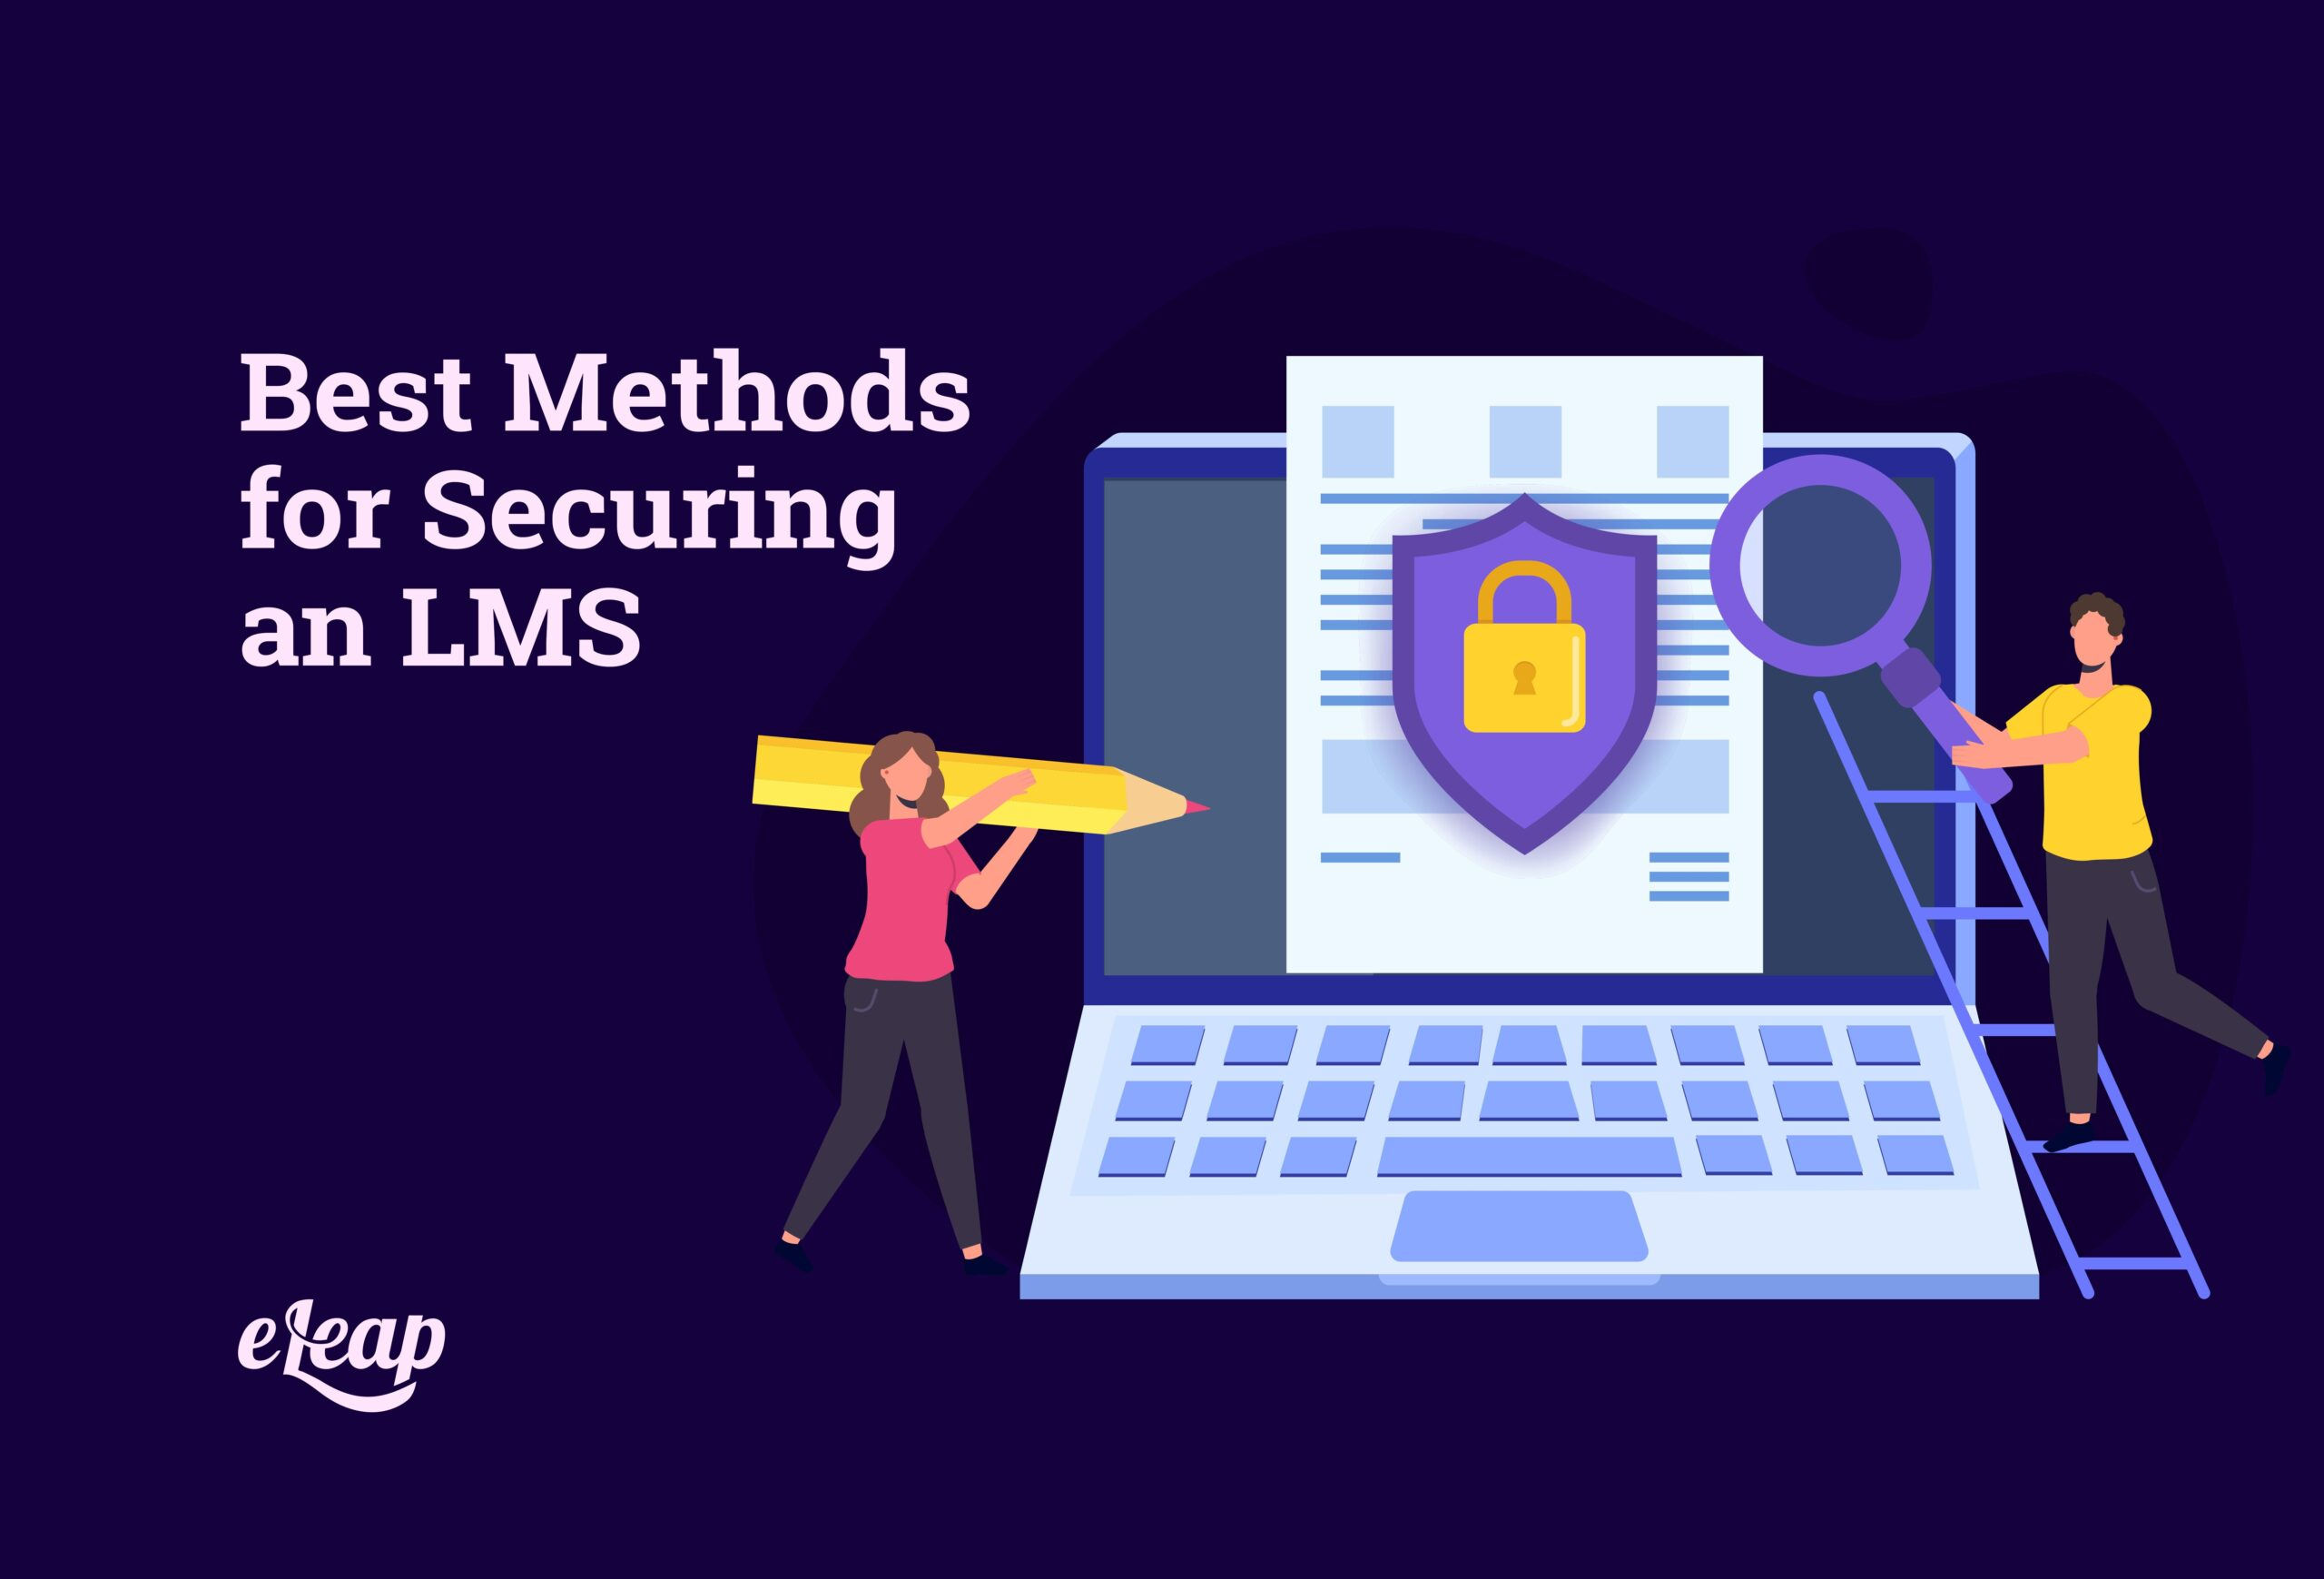 Best Methods for Securing an LMS